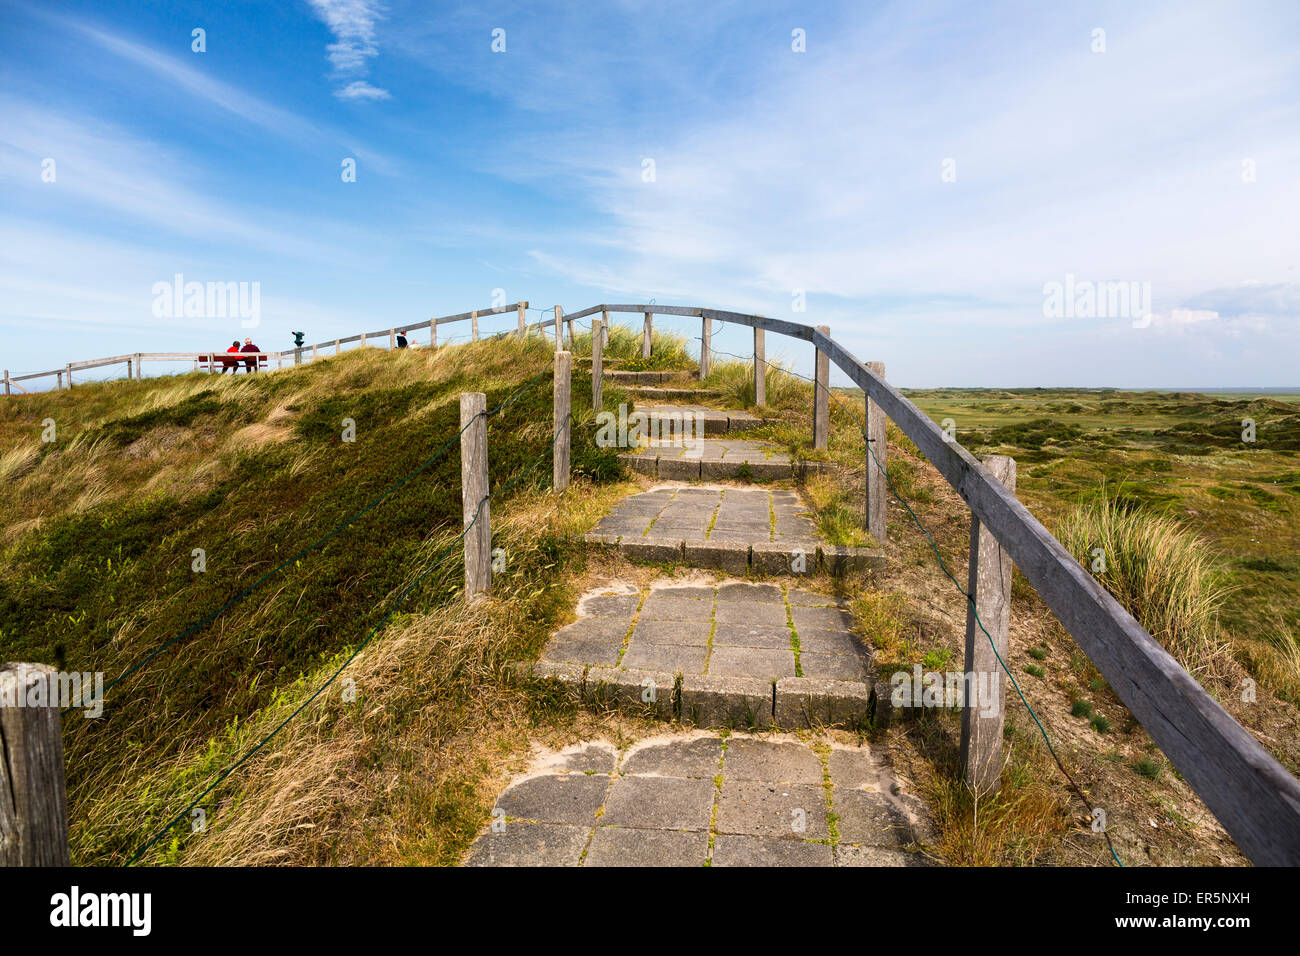 Look-out dune, Langeoog Island, North Sea, East Frisian Islands, East Frisia, Lower Saxony, Germany, Europe - Stock Image